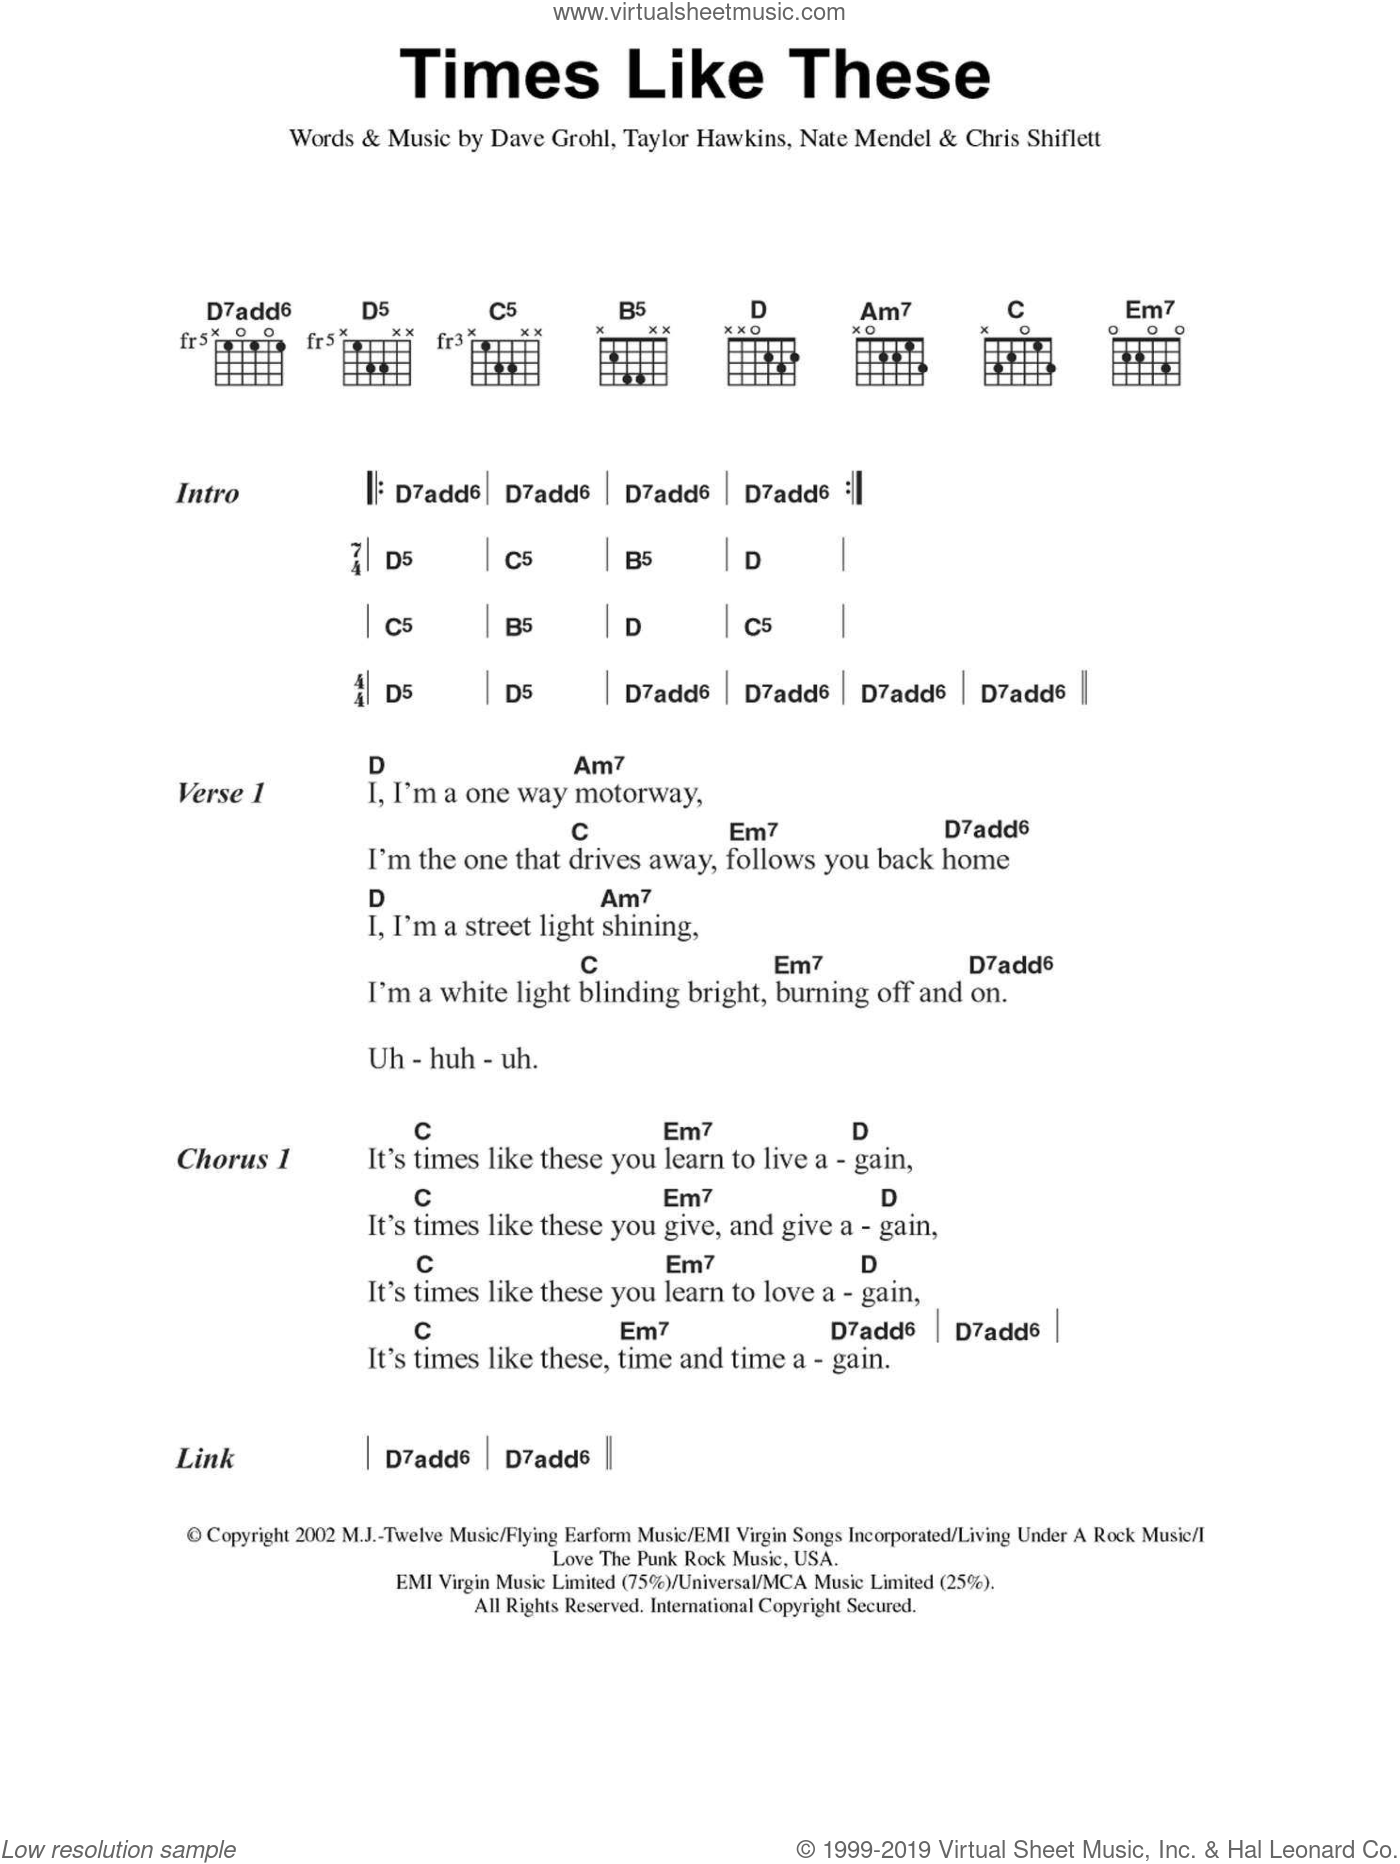 Times Like These sheet music for guitar (chords) by Chris Shiflett, Foo Fighters, Dave Grohl, Nate Mendel and Taylor Hawkins. Score Image Preview.